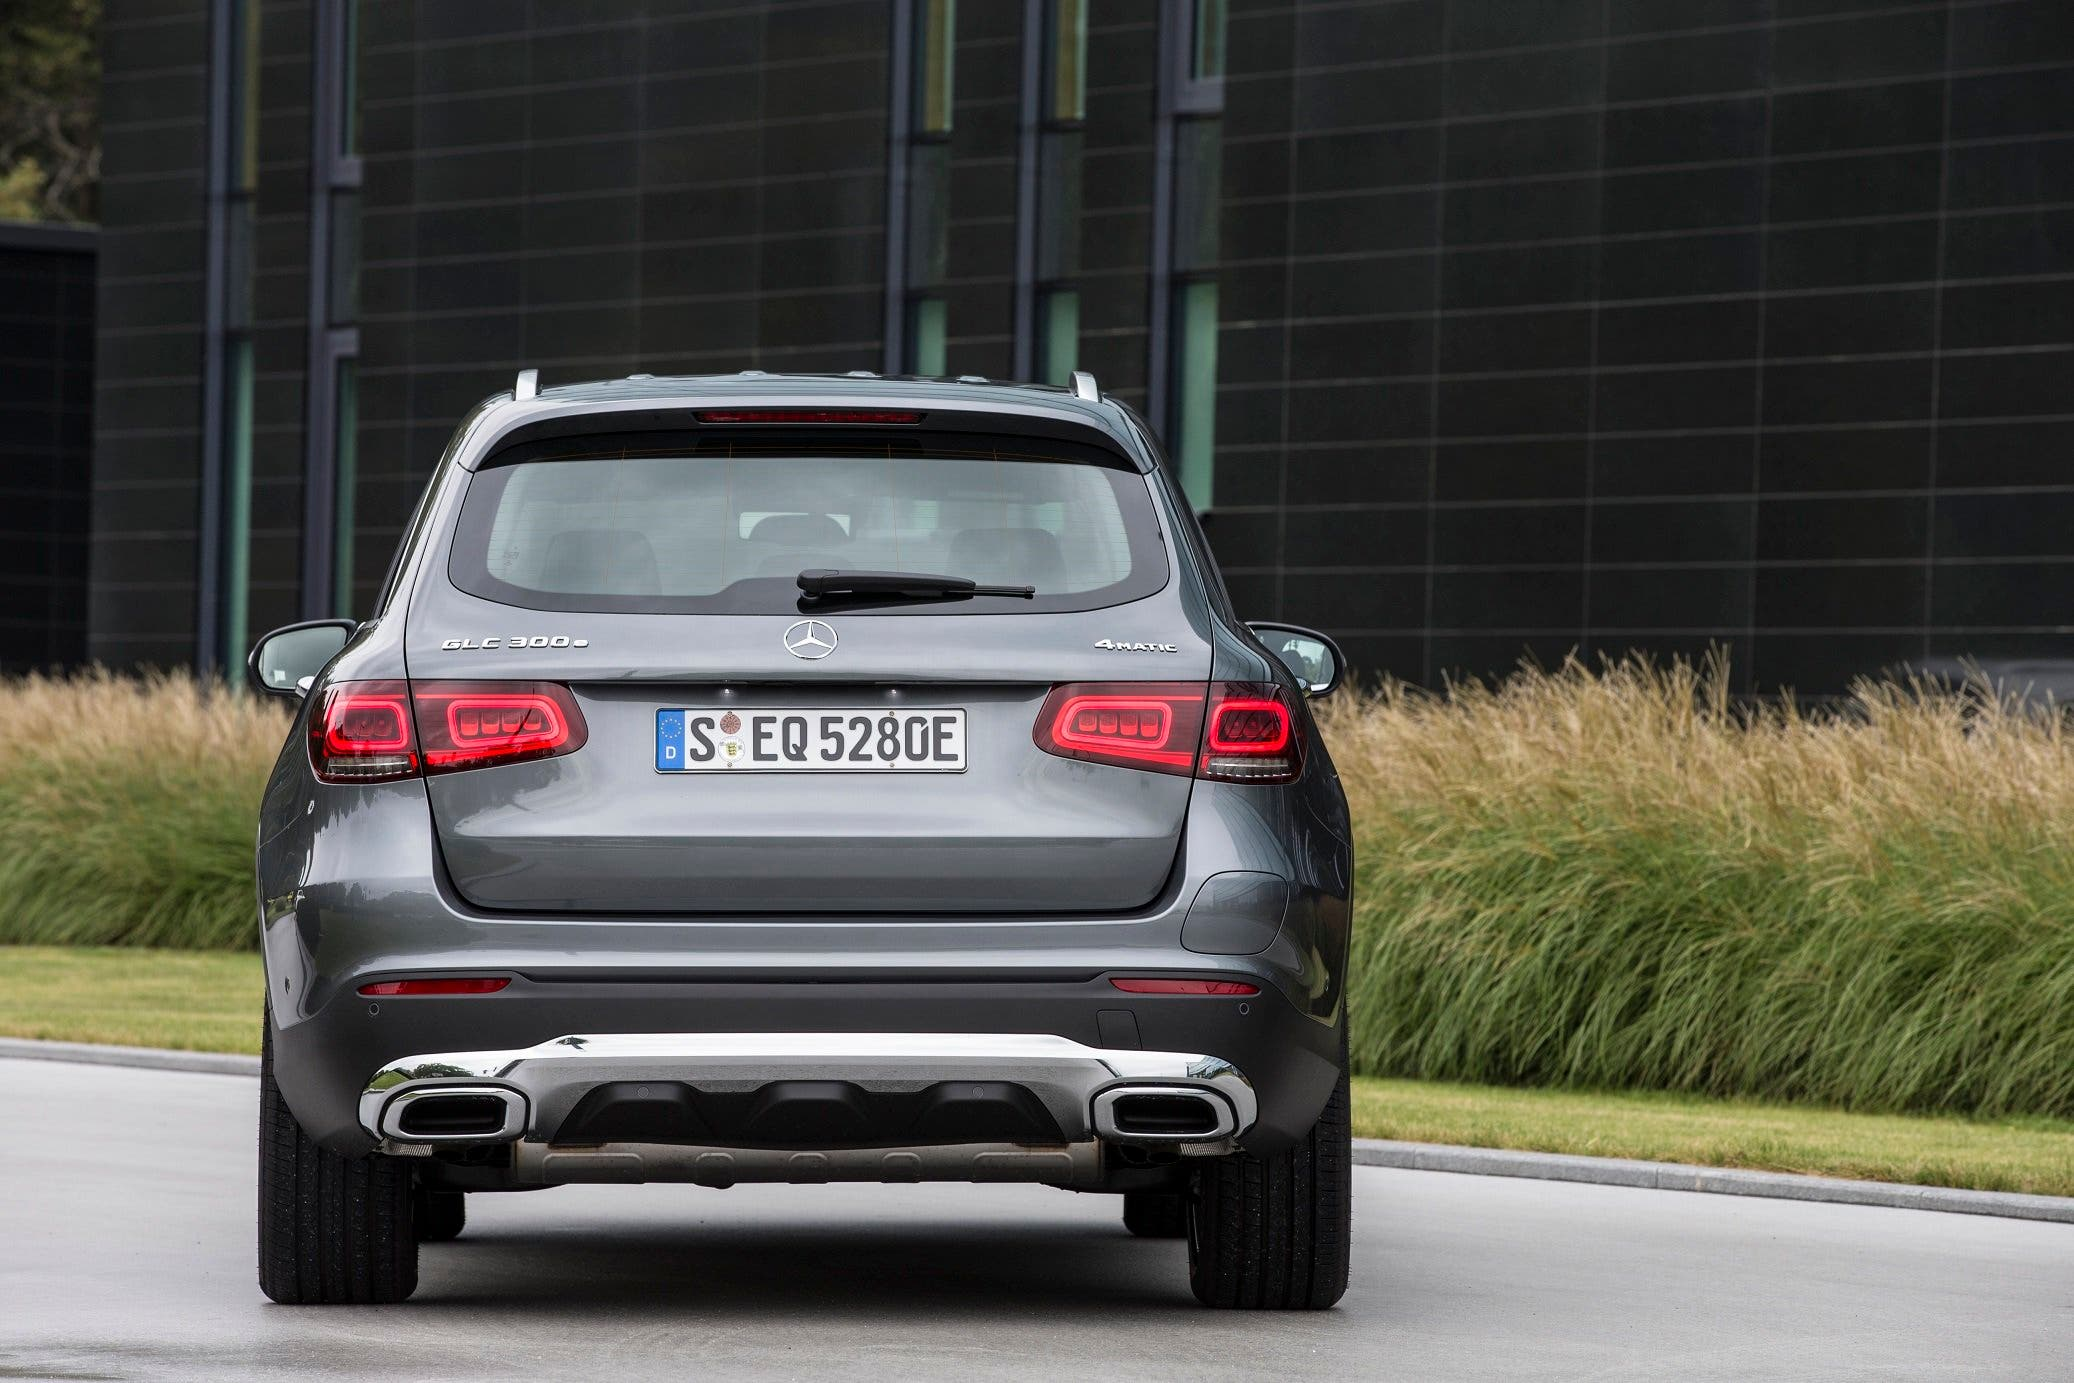 GLC 300 e 4MATIC, selenitgrau metallic, Leder schwarz;Kraftstoffverbrauch gewichtet 2,5-2,2 l/100 km, CO2-Emissionen gewichtet 57-51 g/km, Stromverbrauch gewichtet 17,8-16,5 kWh/100 km*  (vorläufige Angaben)GLC 300 e 4MATIC, selenite grey metallic, Leather black ;Weighted fuel consumption 2.5-2.2 l/100 km, weighted CO2 emissions 57-51 g/km, weighted power consumption 17.8-16.5 kWh/100 km* (provisional figures)